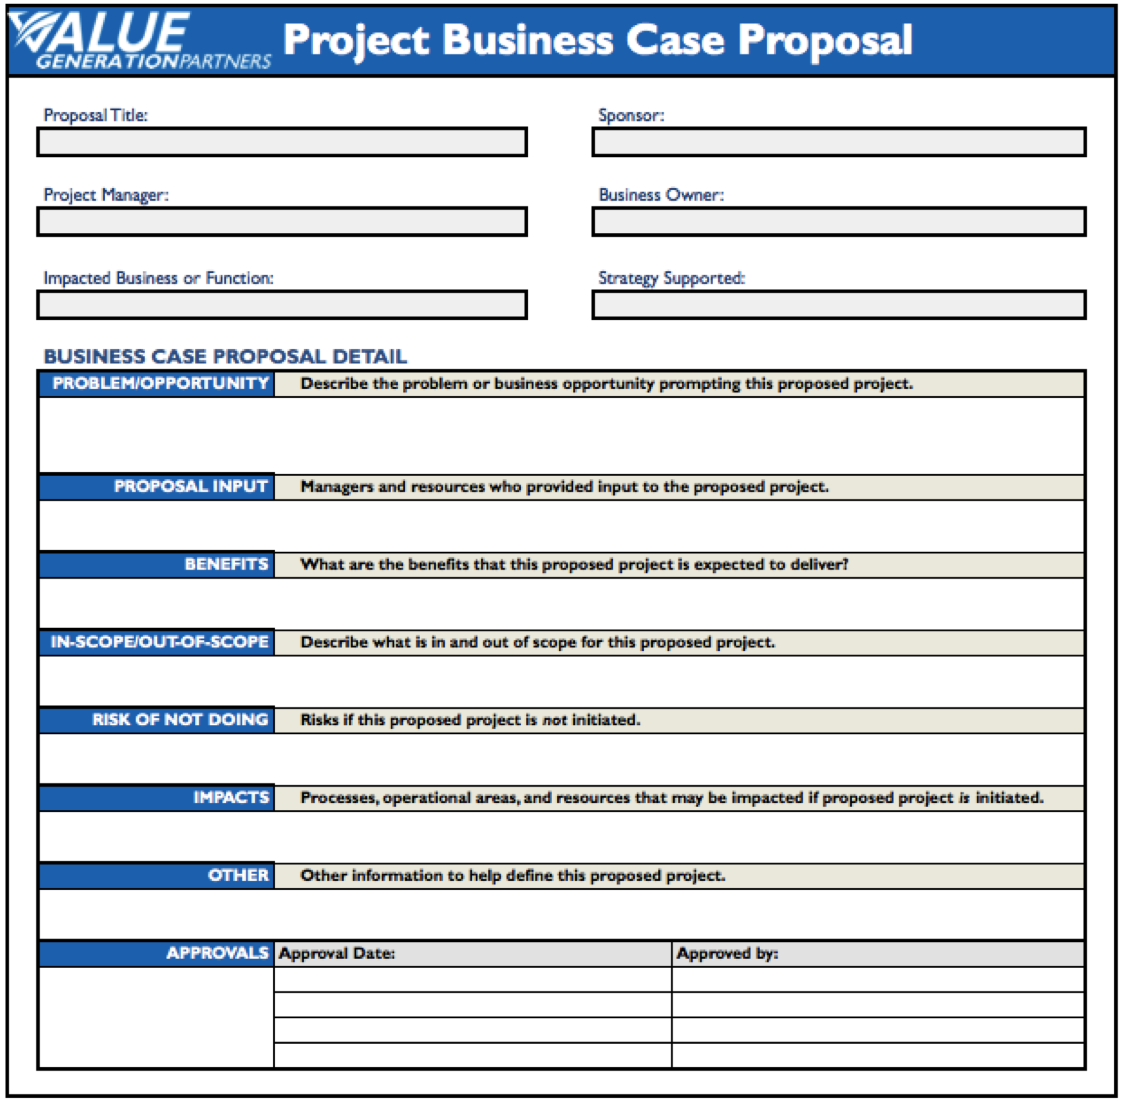 Regardless of your project business case proposal template